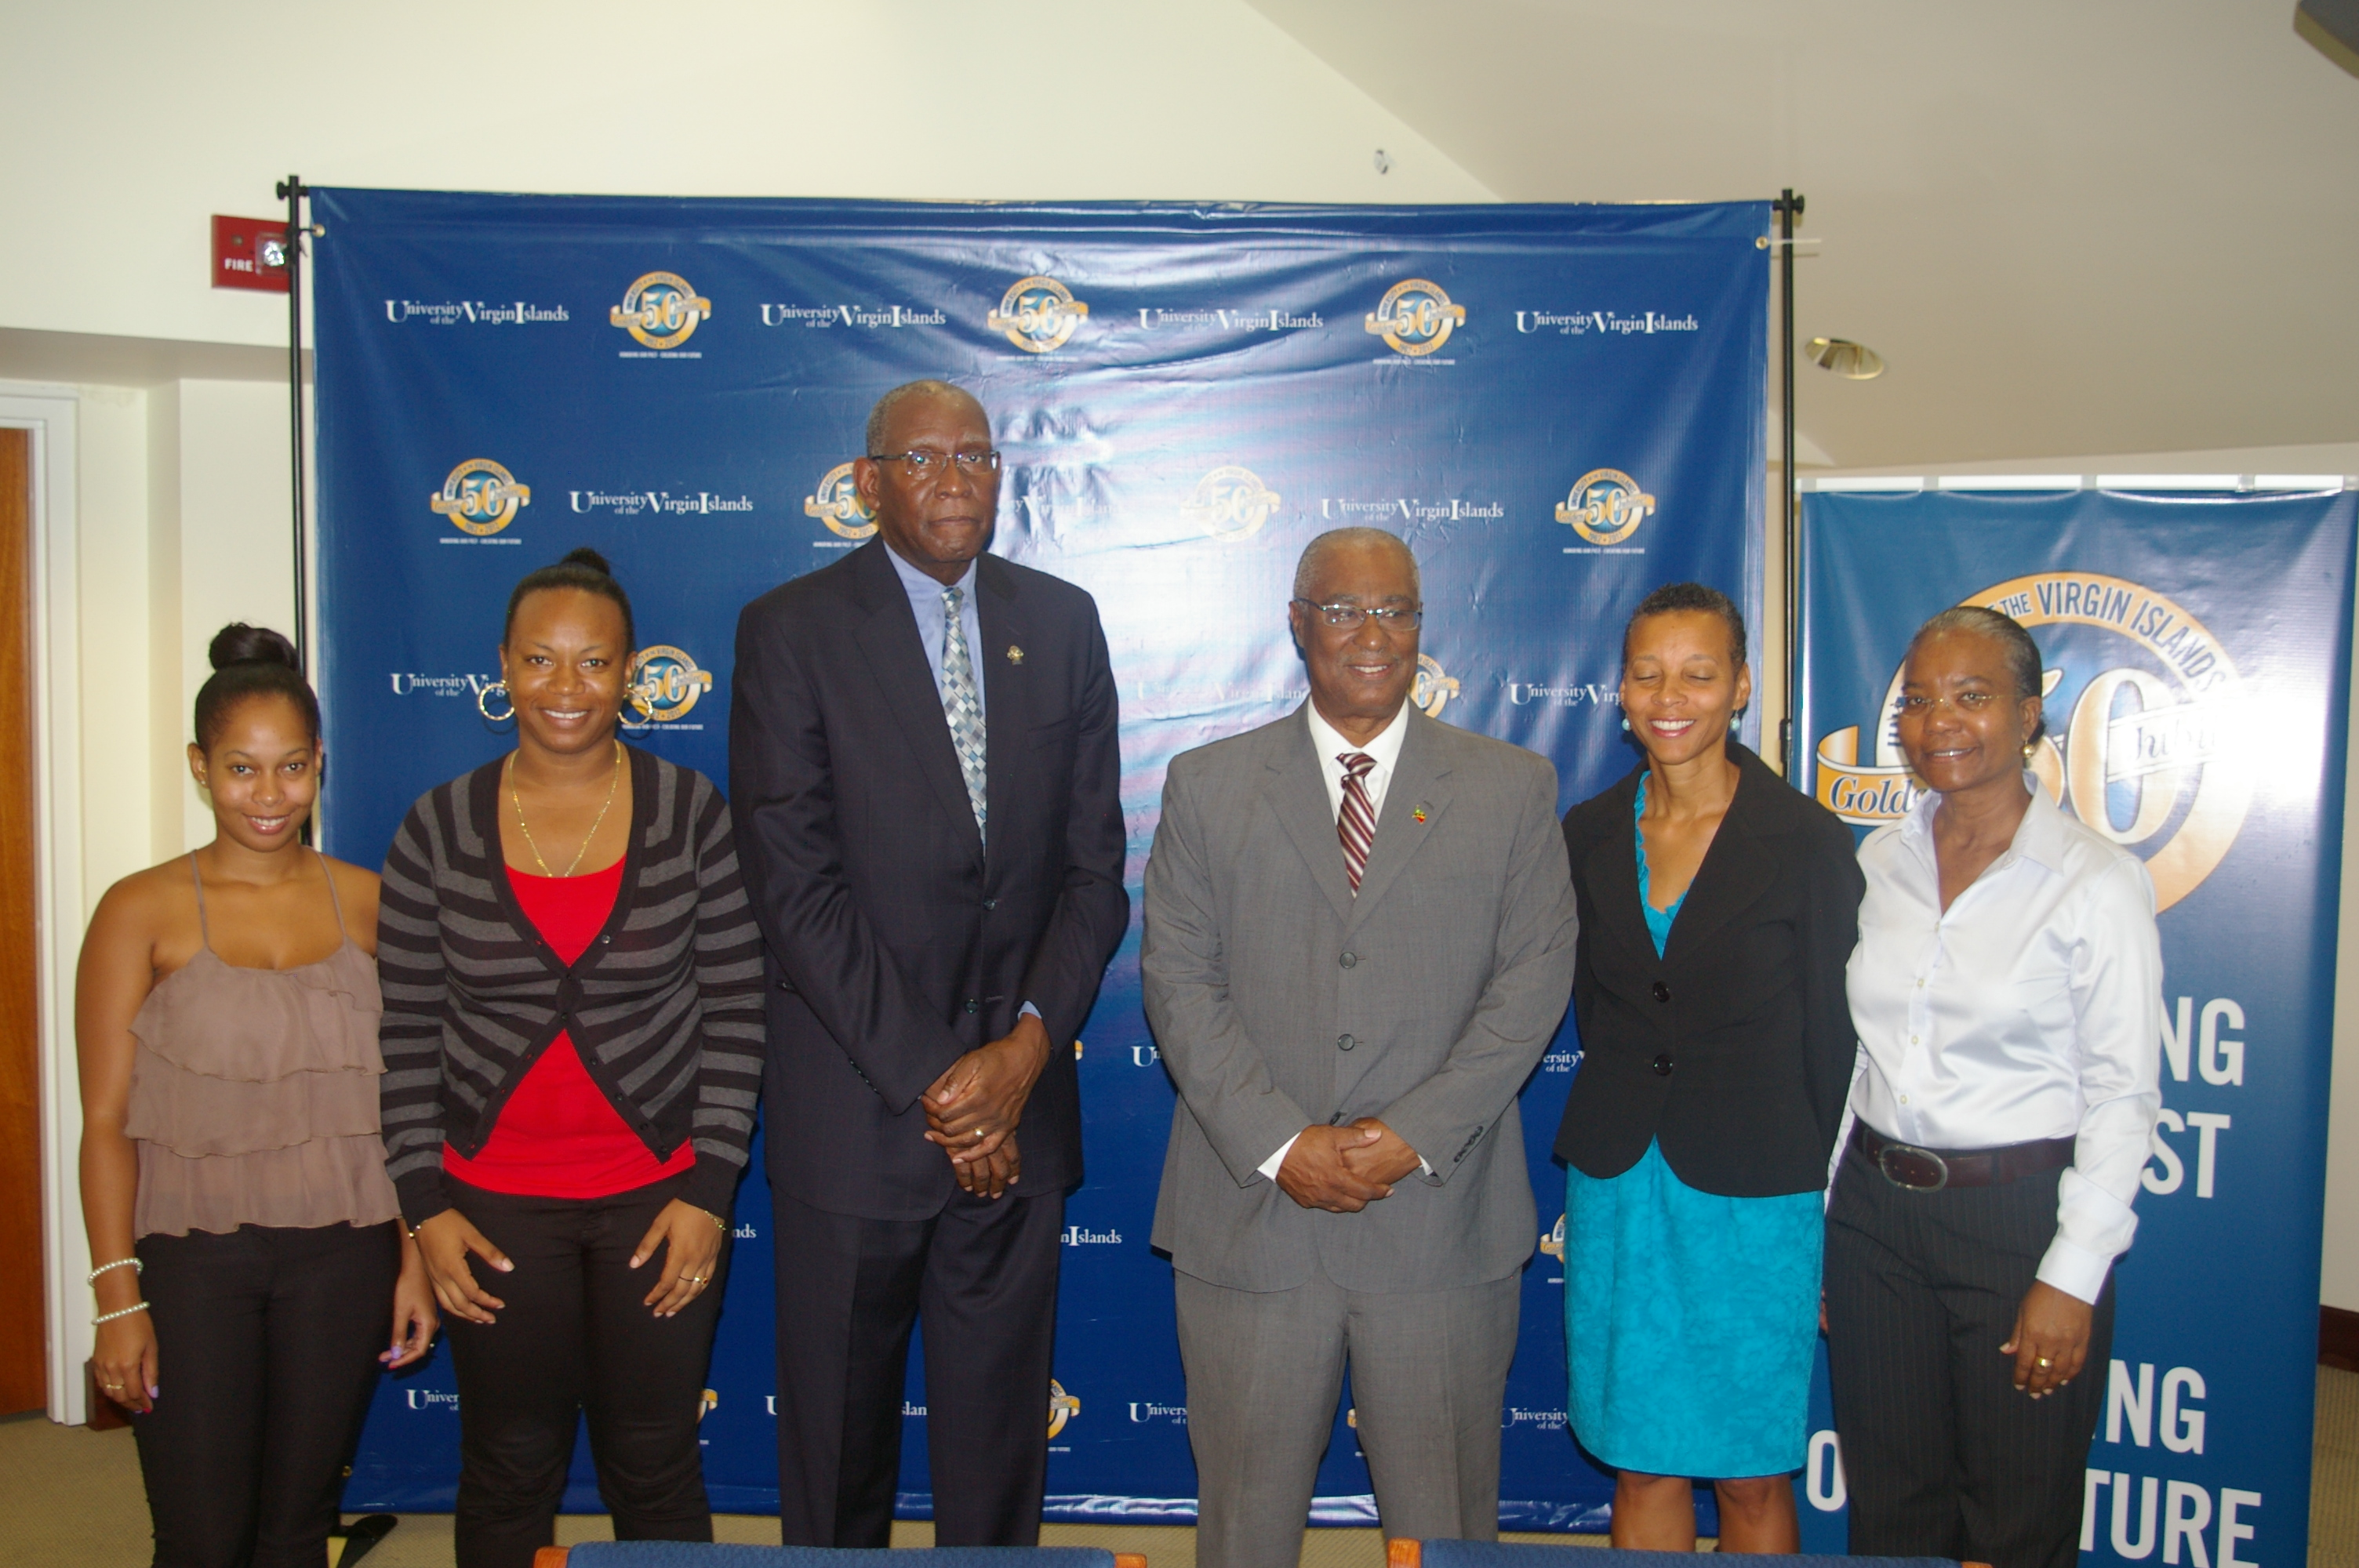 (L-R) UVI students-Ms.Abigail Parry and Ms Aujeunelle Brown, UVI President- Mr. David Hall, Premier of Nevis, Hon. Joseph Parry and UVI staff members.